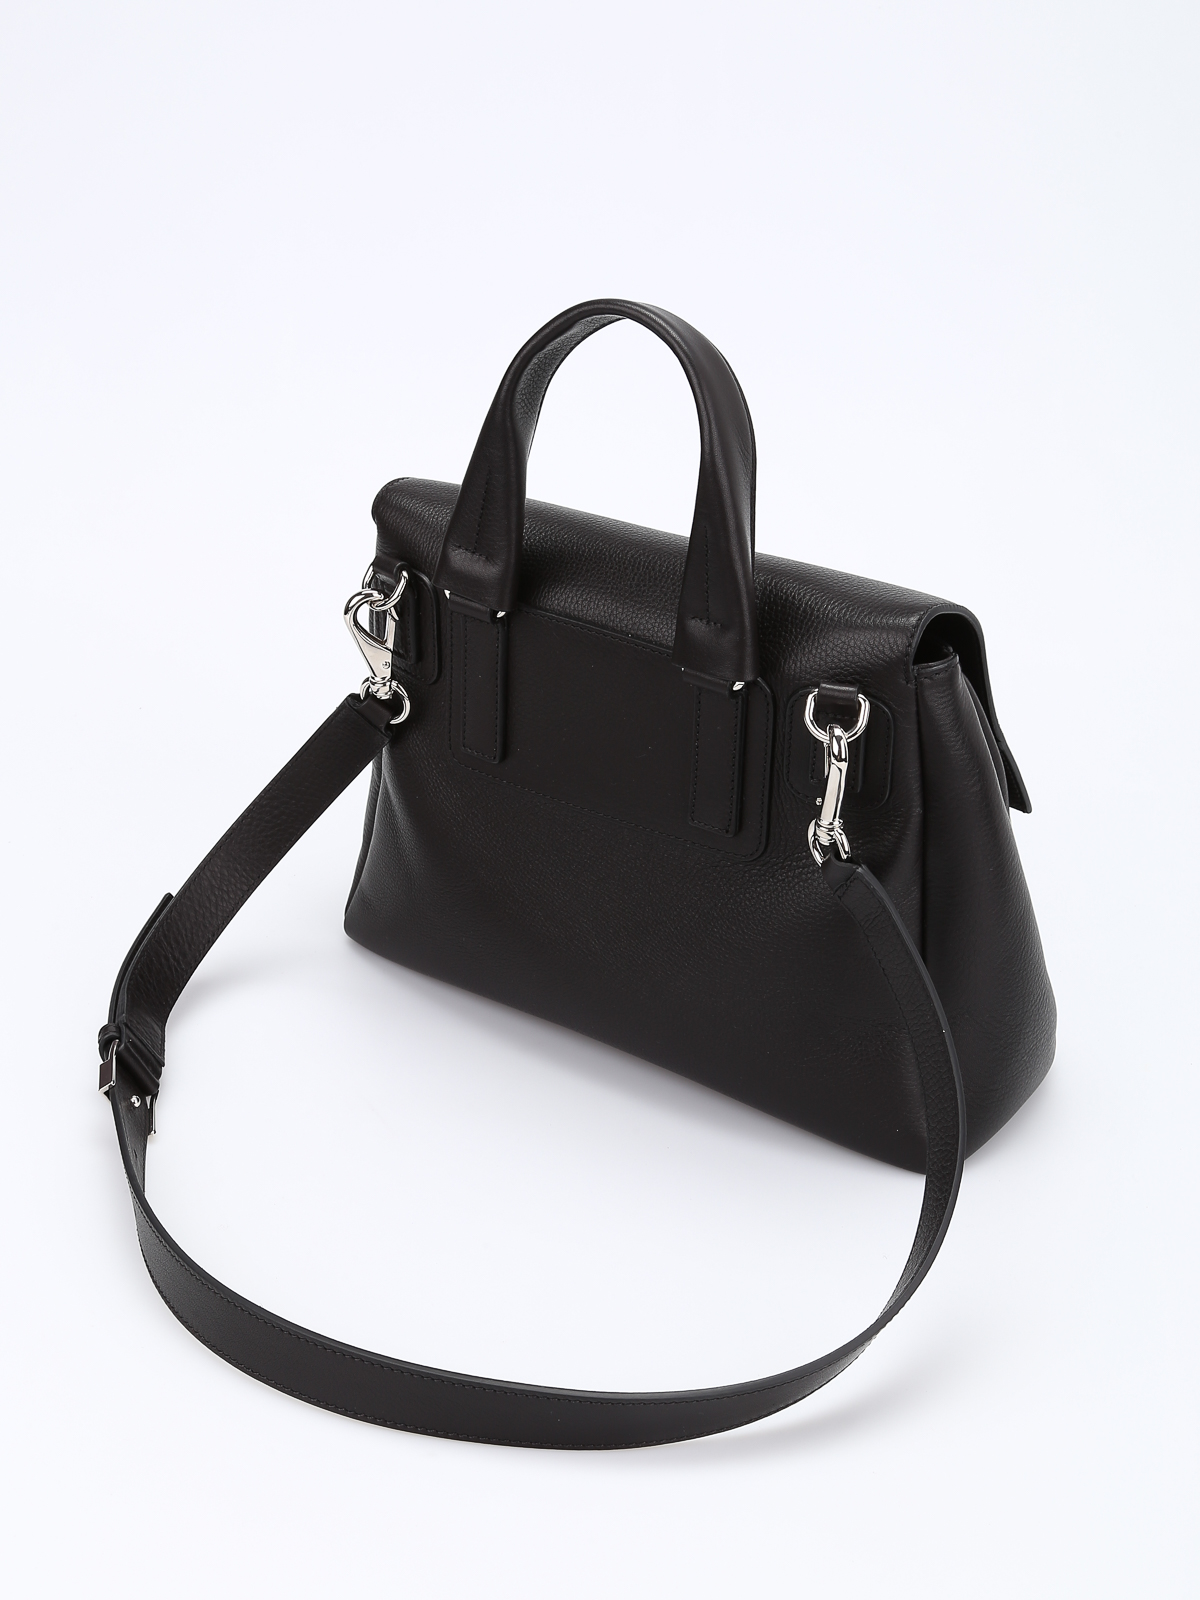 a6a0c38c2c givenchy factory outlet - Small Pandora Pure bag by Givenchy - cross body  bags